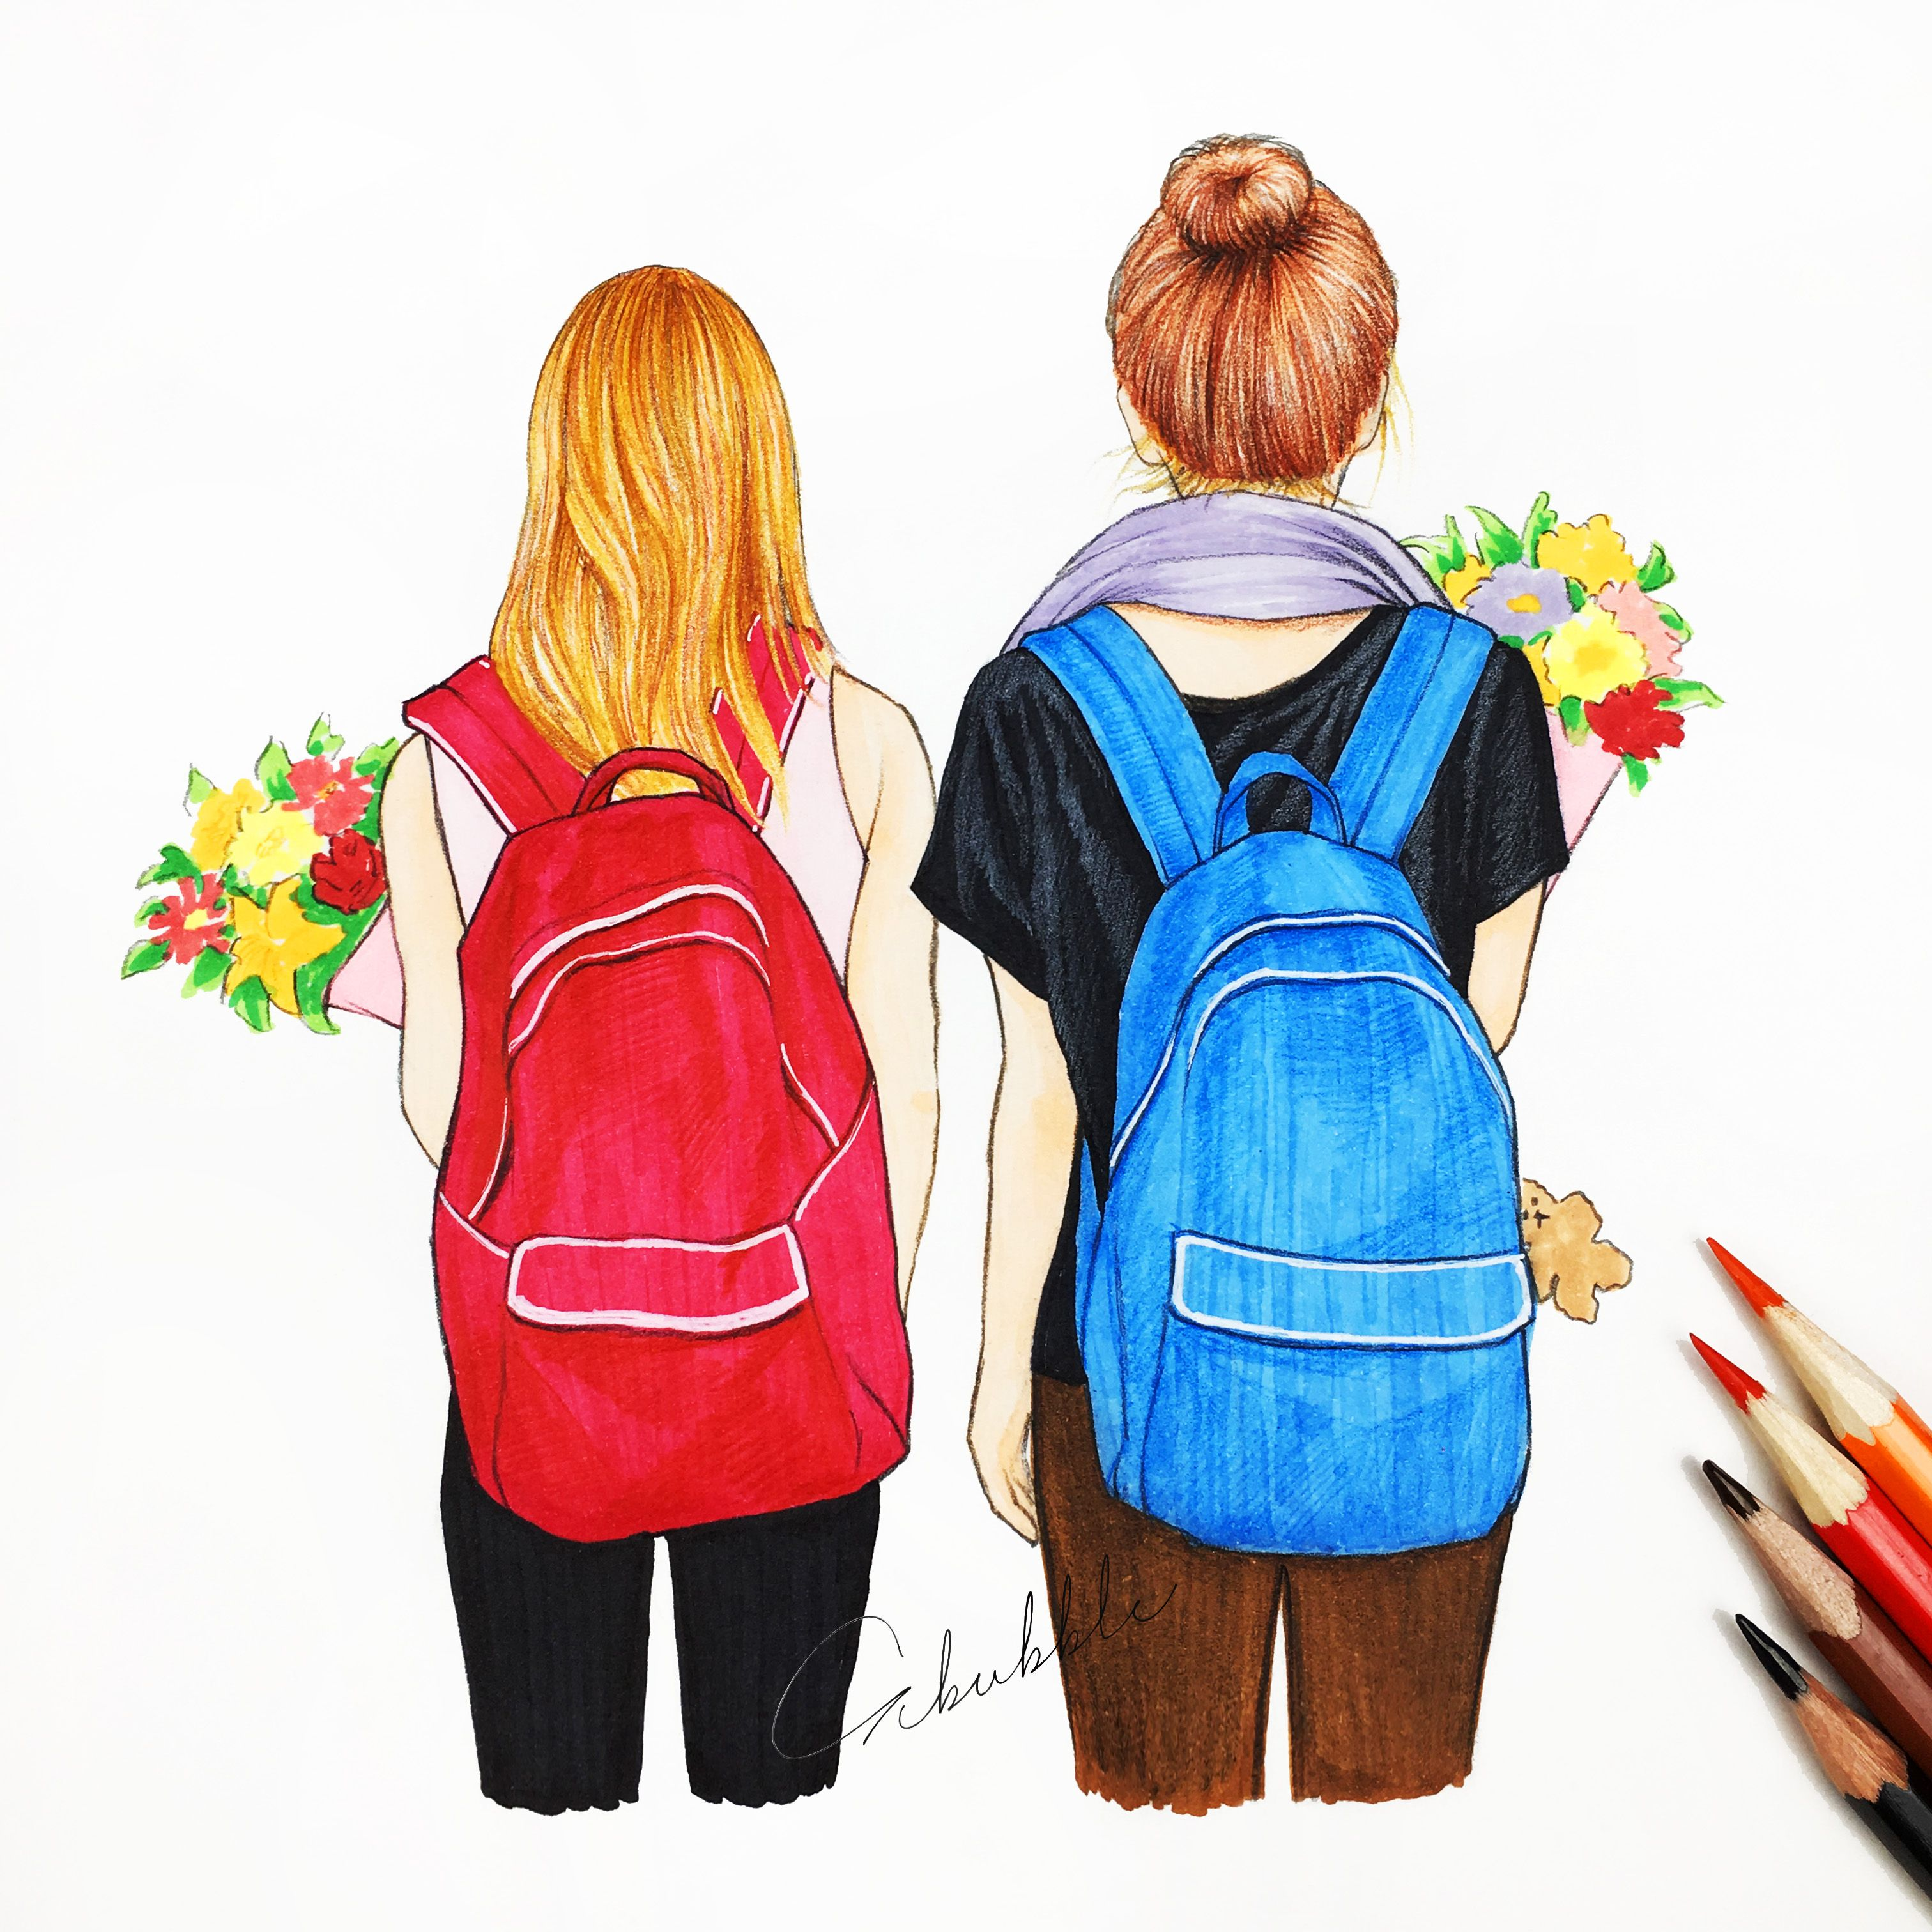 I like going to school with my bestie best friends for Drawing websites